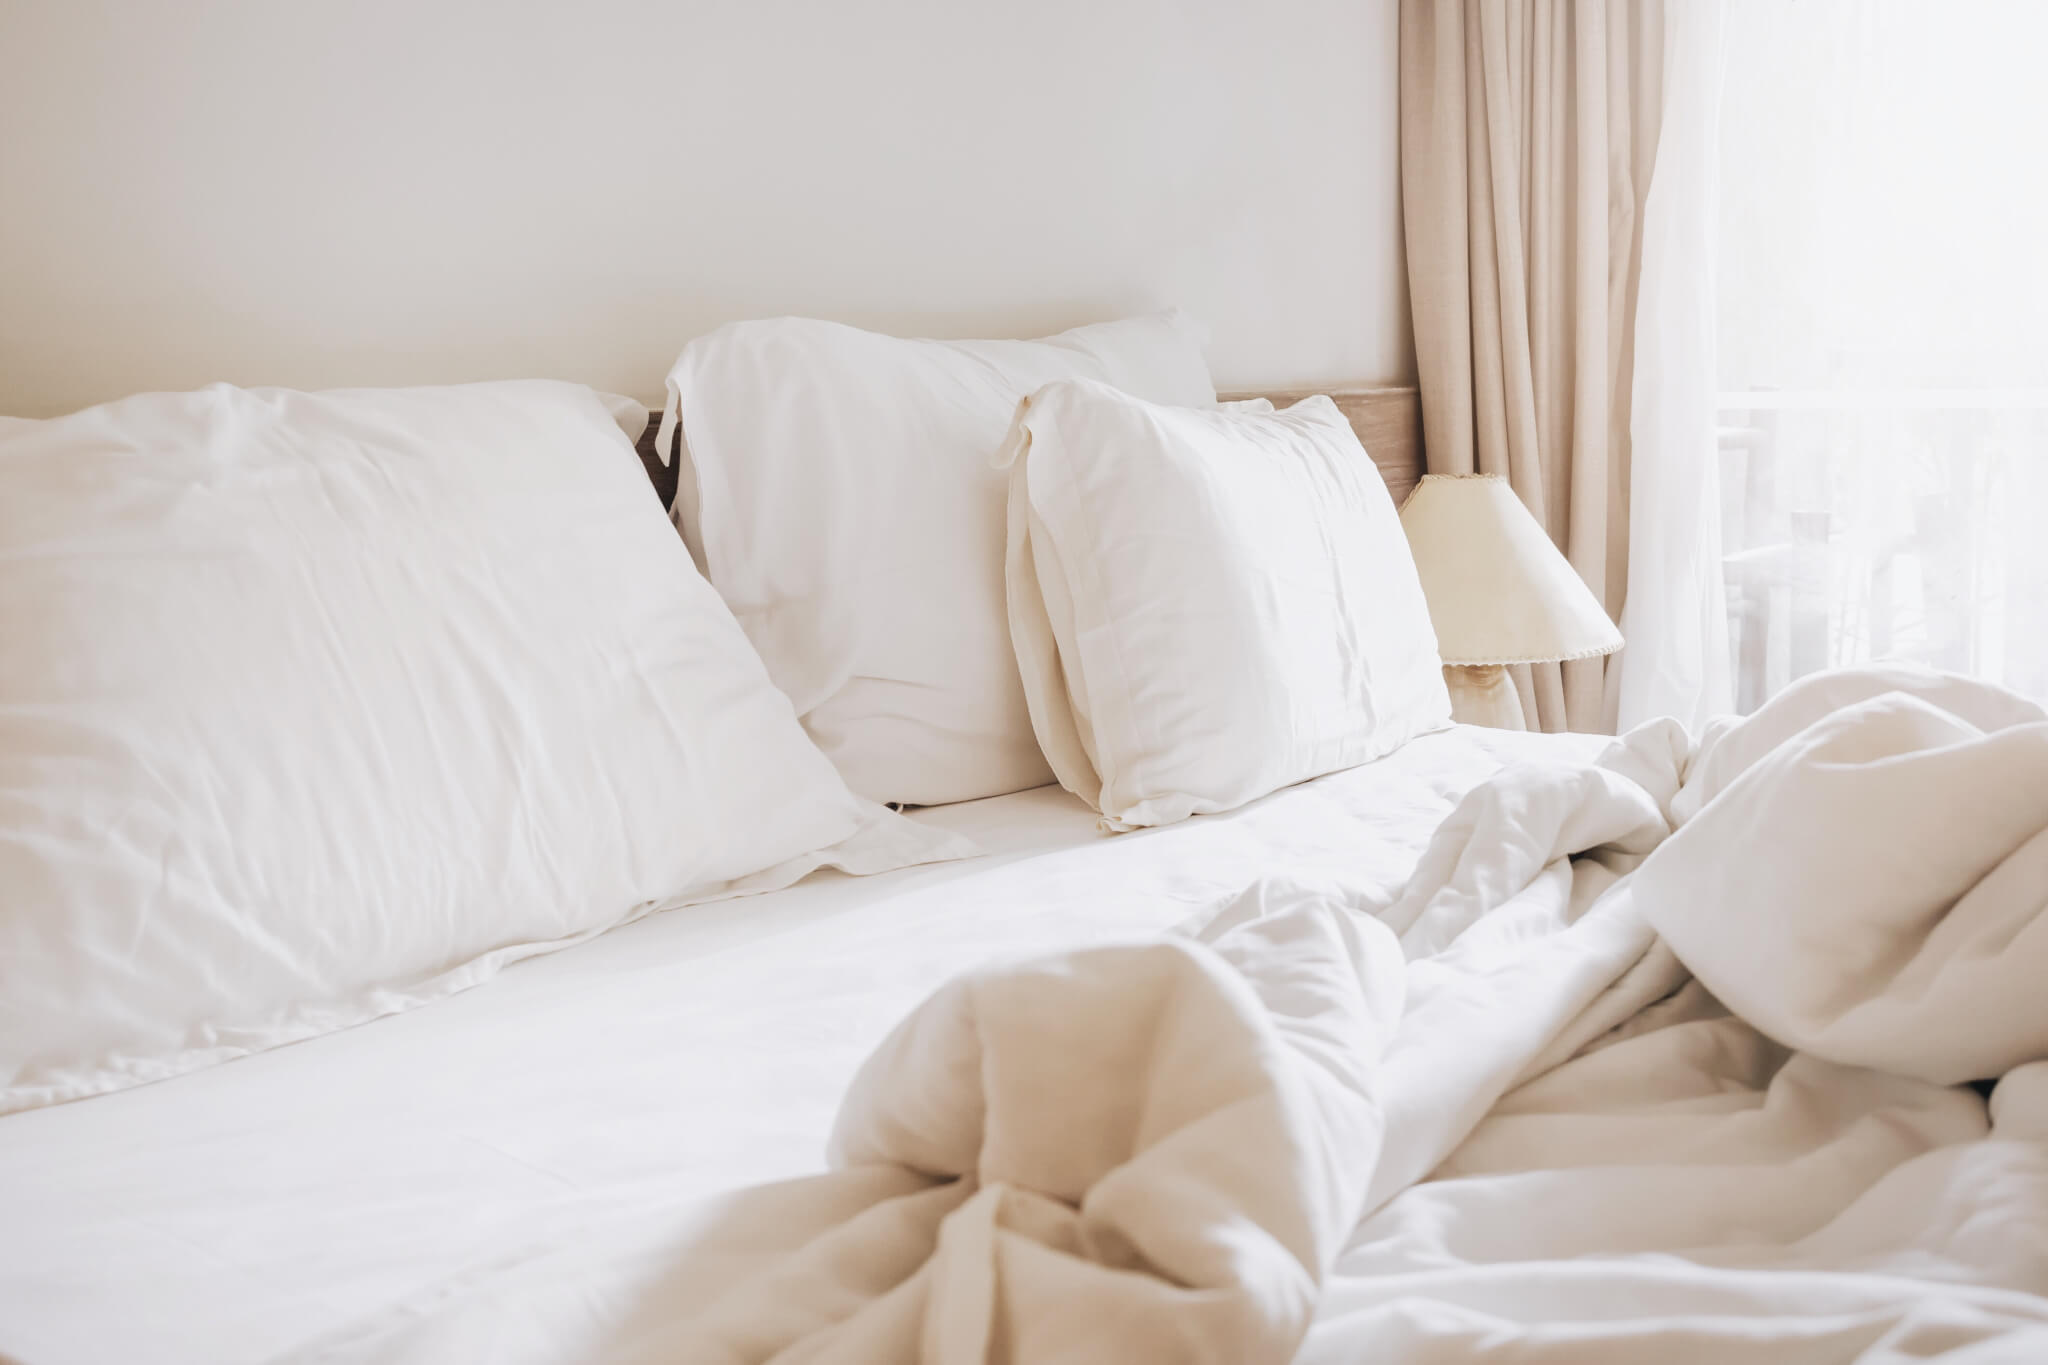 Mattress Buying Guide | Ashley Furniture HomeStore